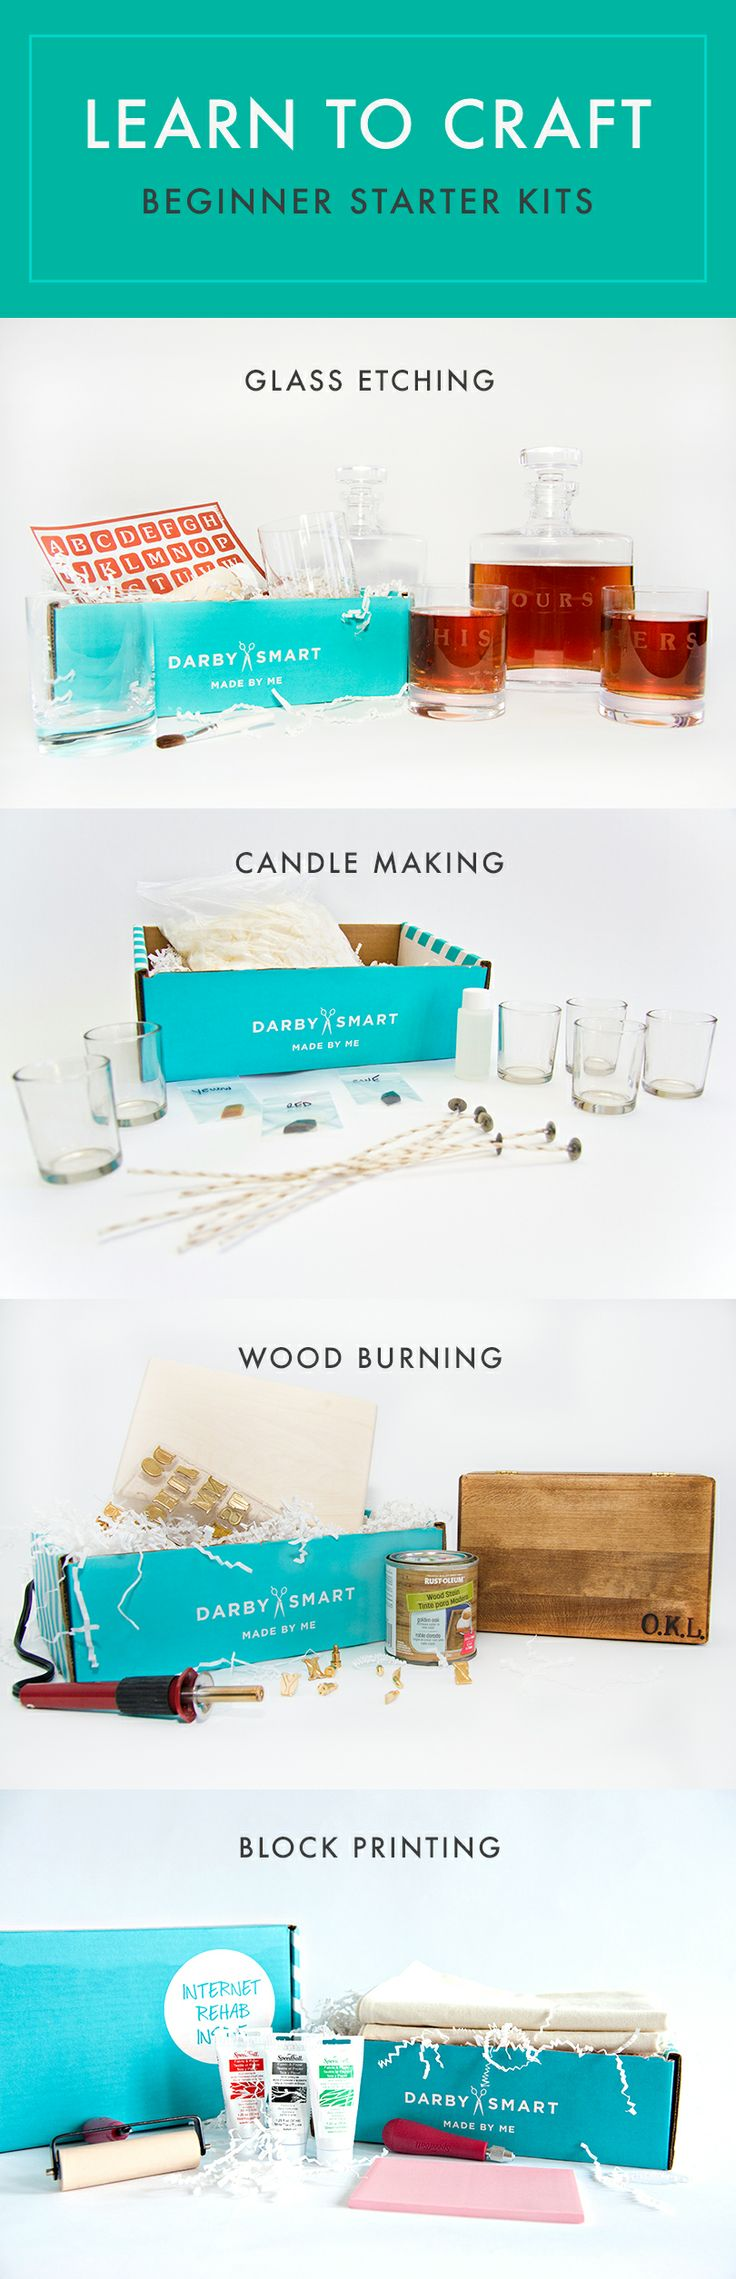 Let's learn to craft… #DarbySmart has it all. Use gift code: perfect gift to save $10.00